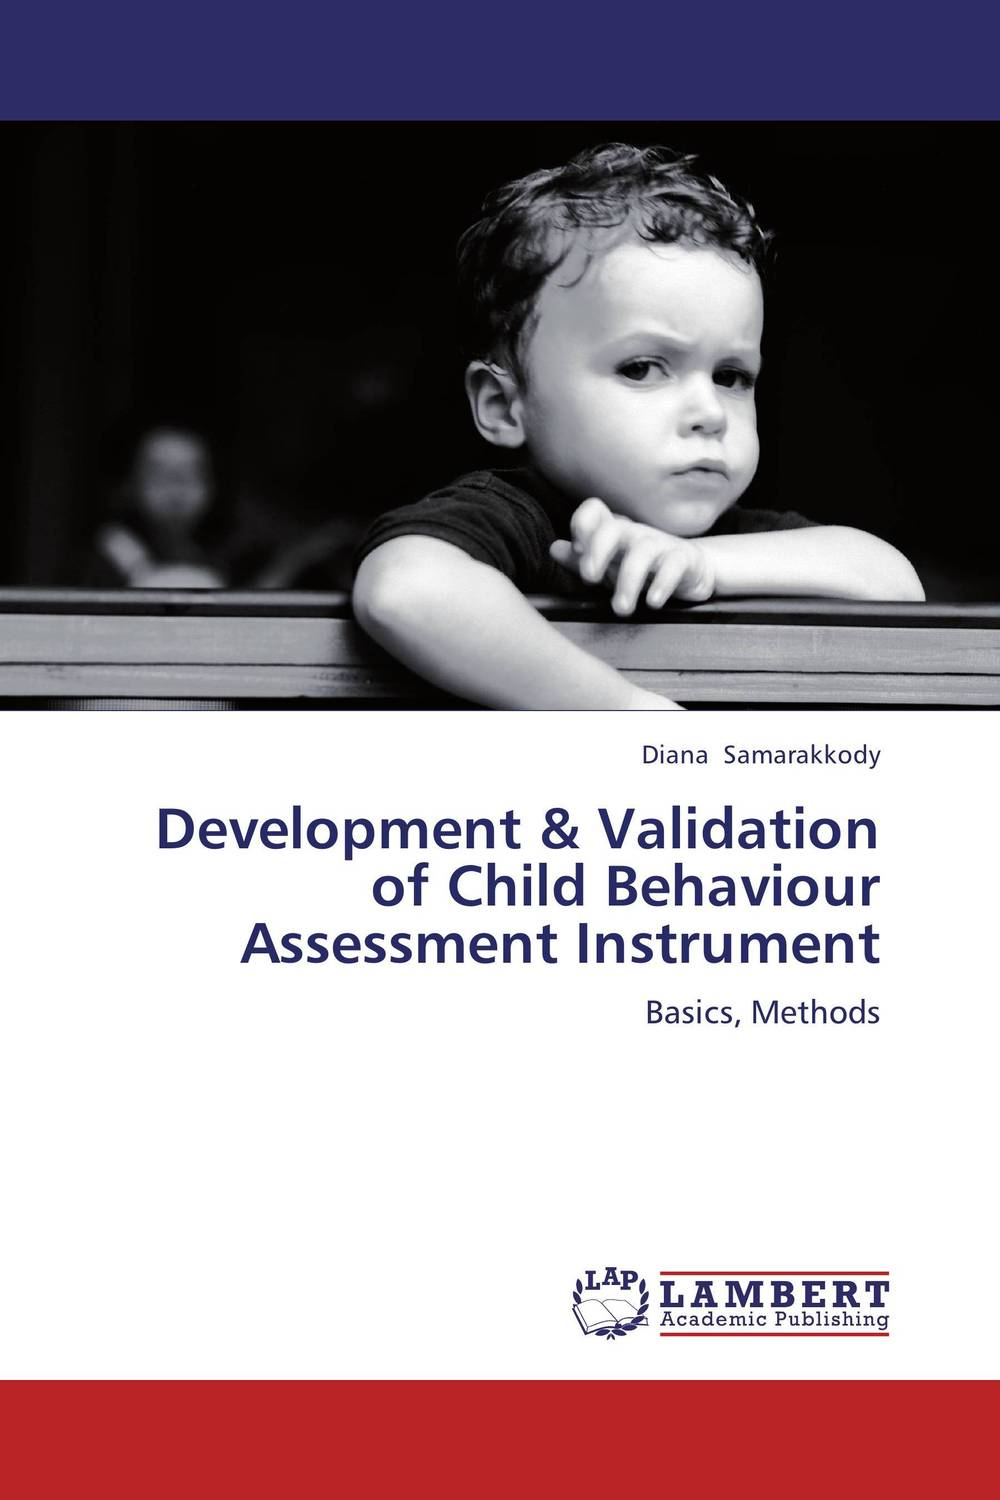 Development & Validation of Child Behaviour Assessment Instrument m d miles development of an accreditation assessment survey